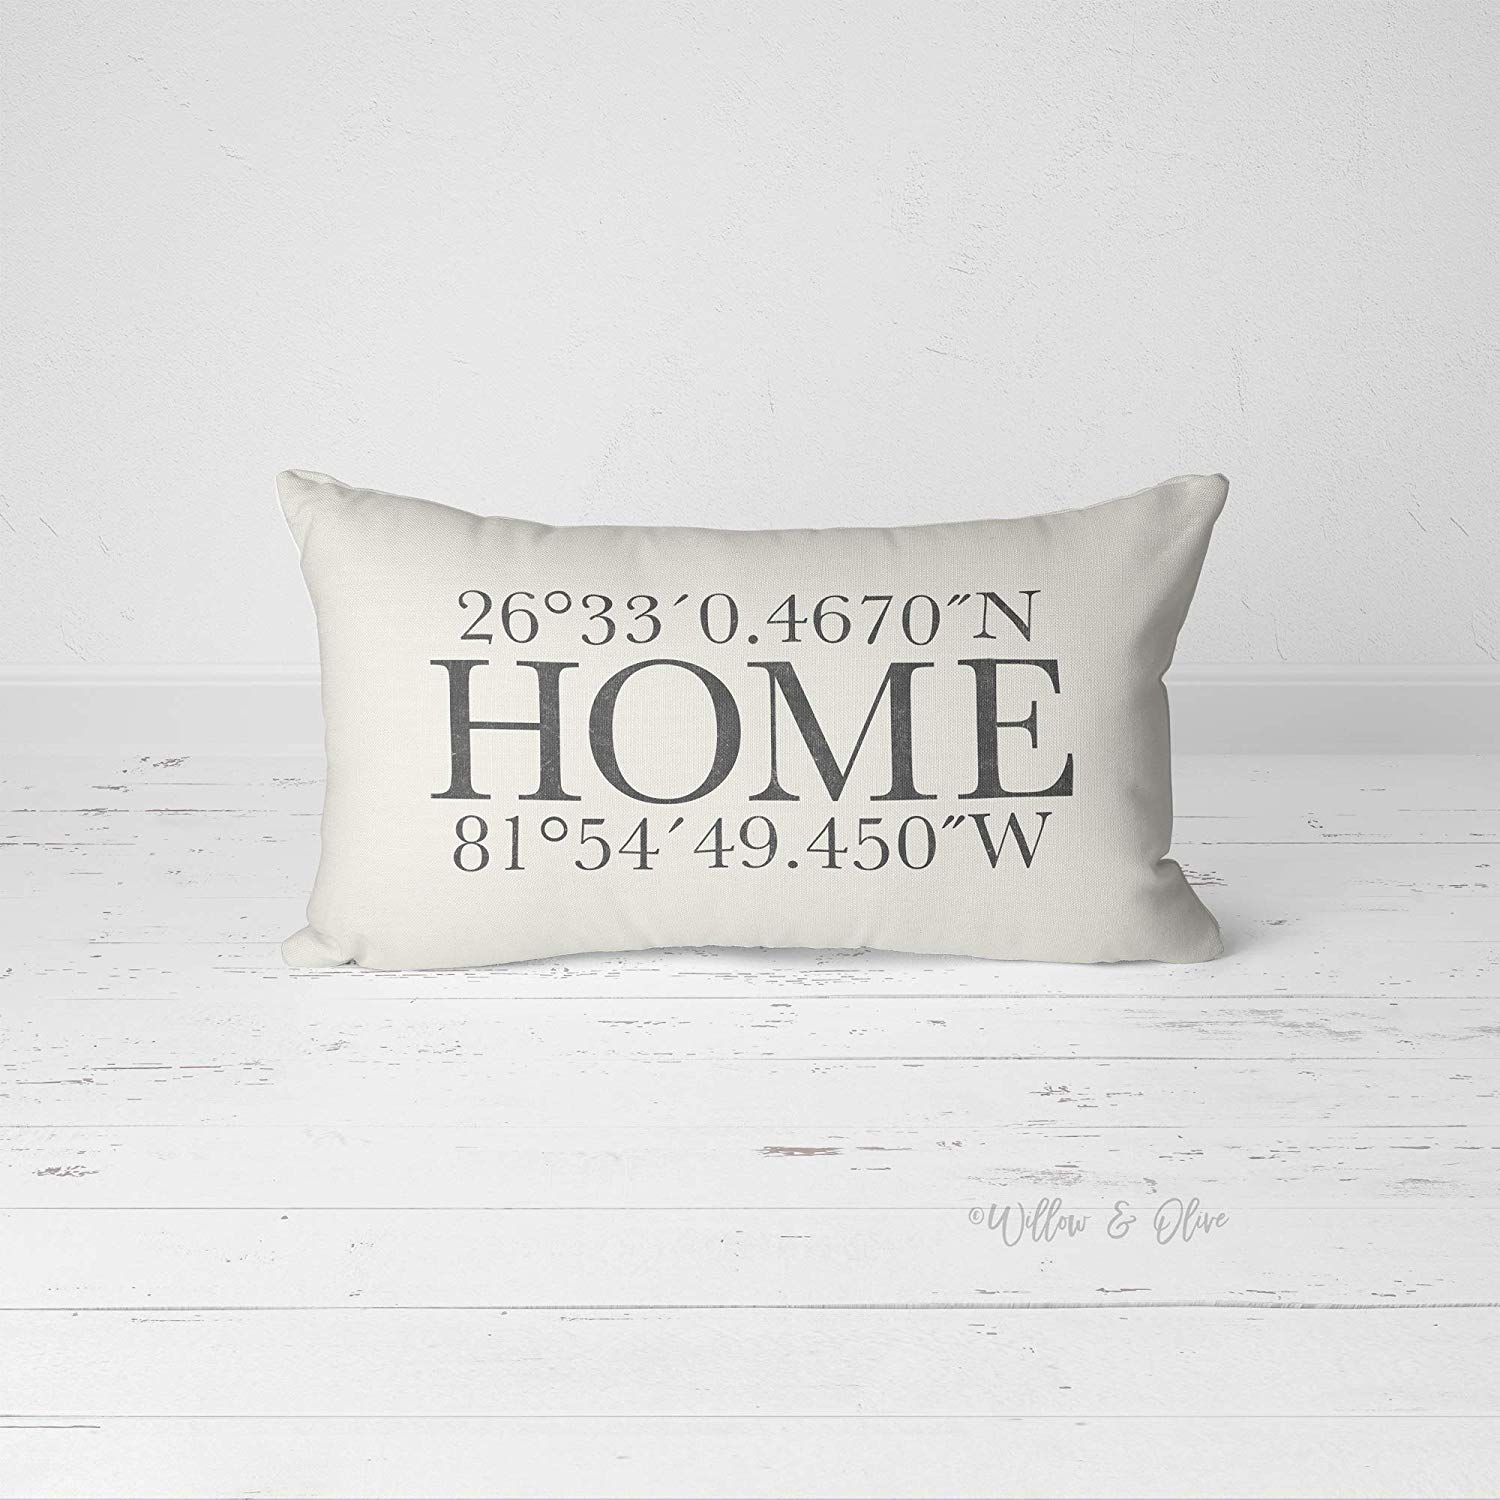 home-gifts-pillow